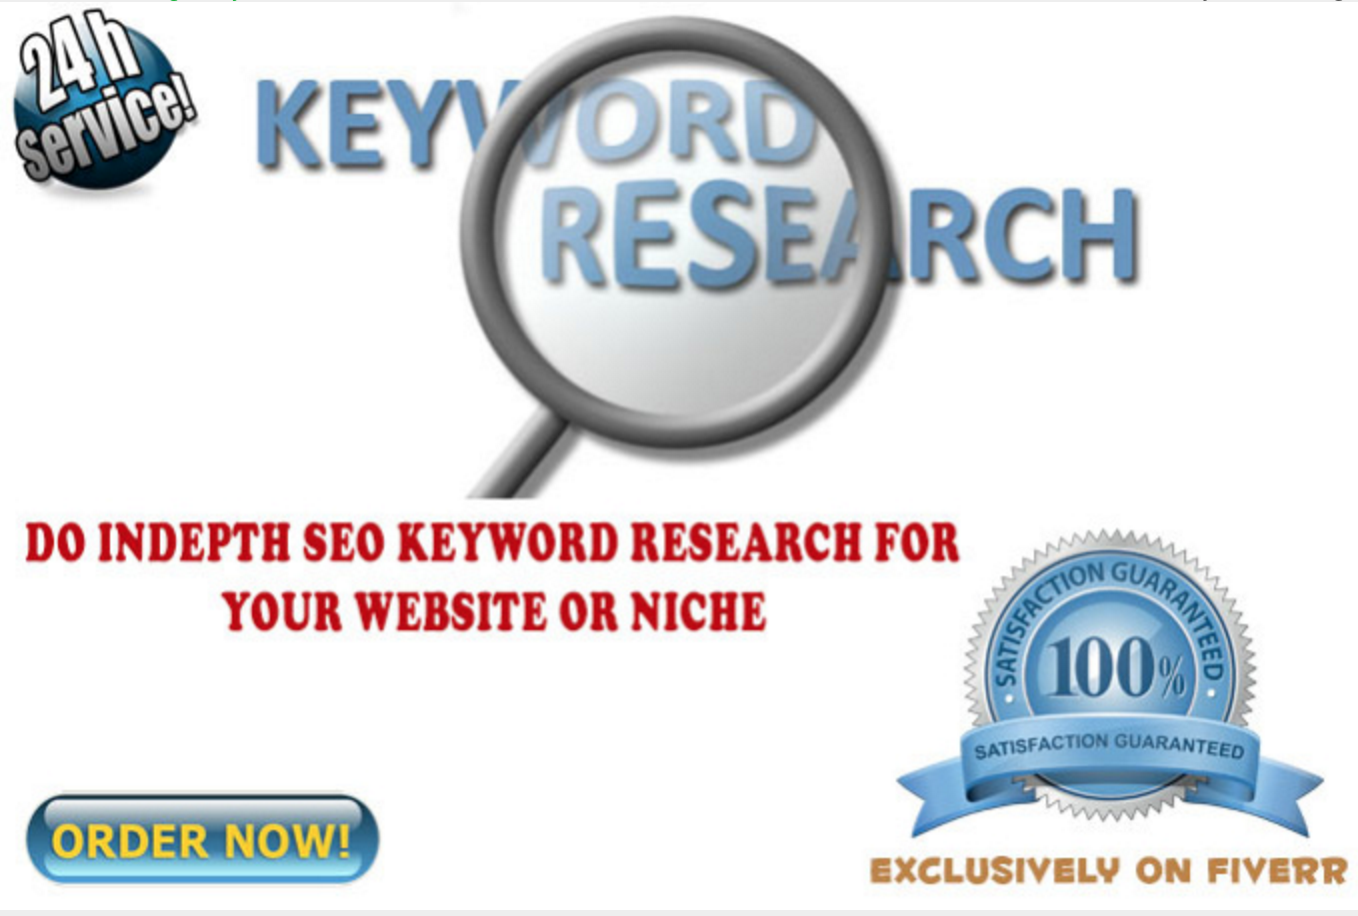 do Indepth SEO Keyword Research For Your Niche Website